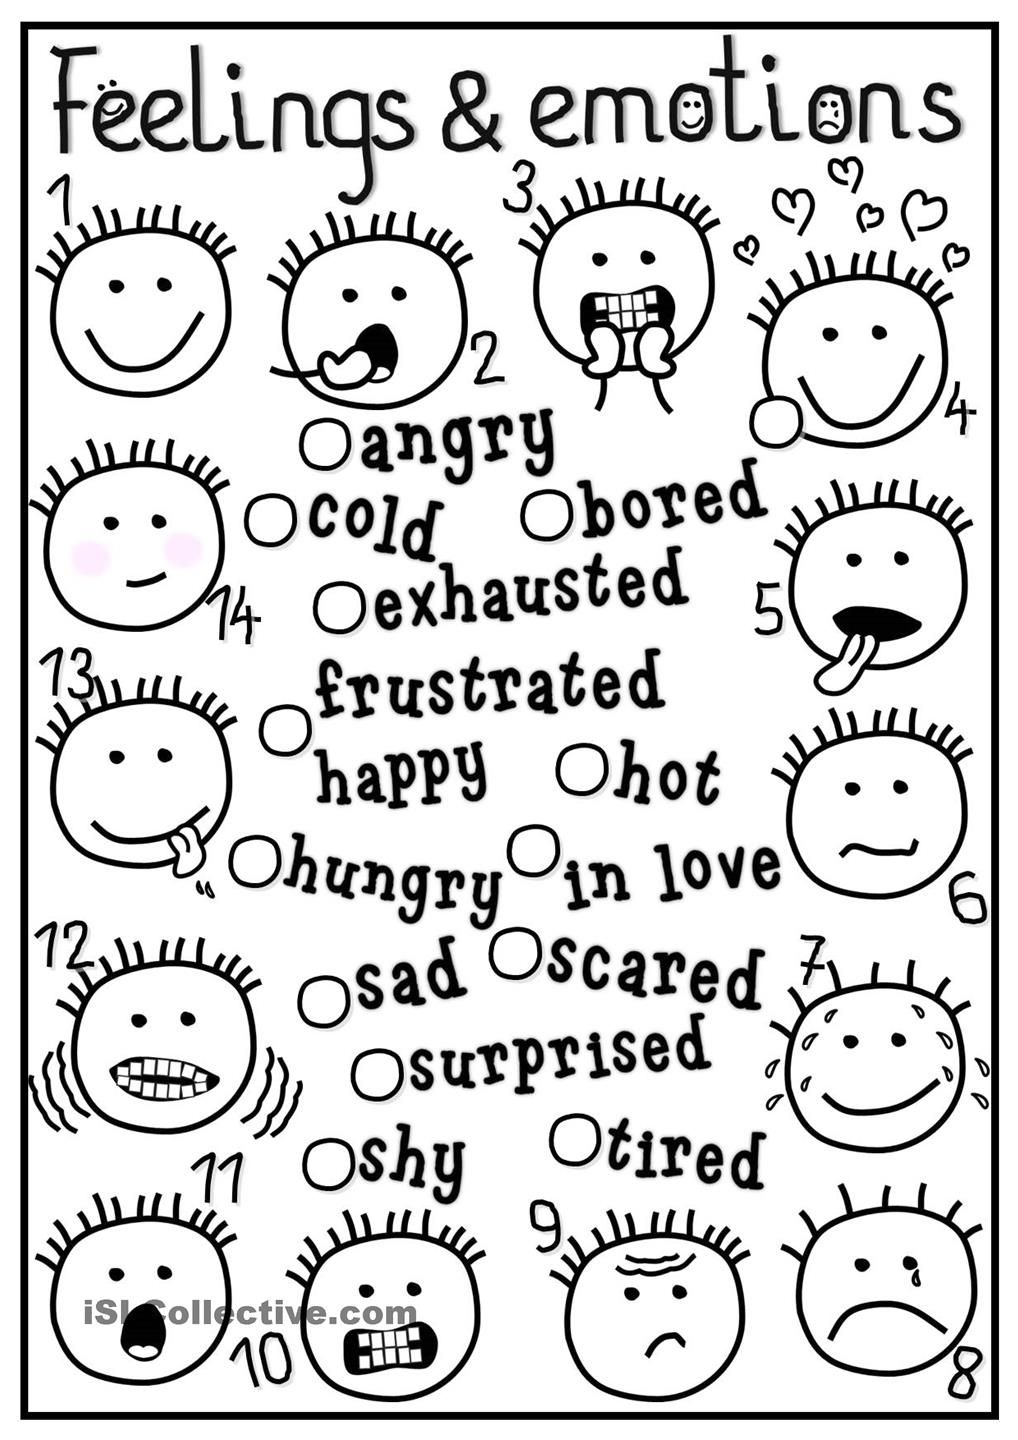 Printables Emotions Worksheets 1000 images about feeling on pinterest feelings words kids pages and emotions